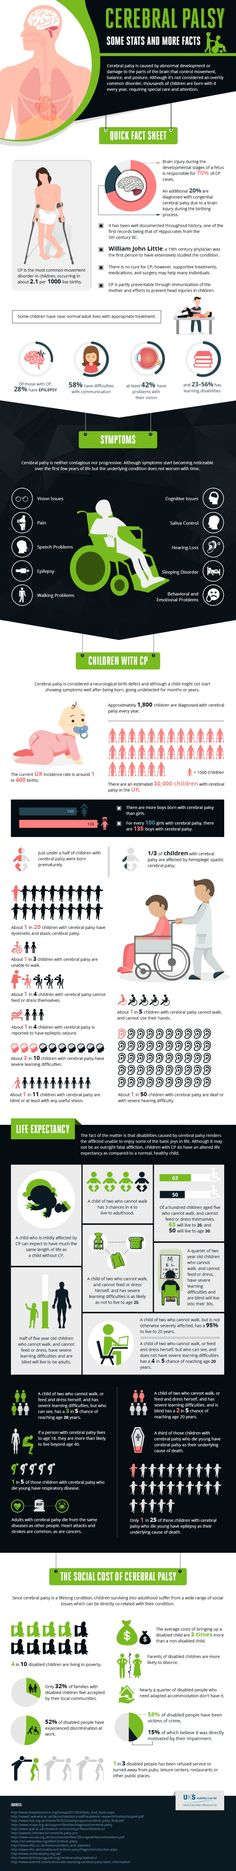 Cerebral Palsy: Stats and Facts